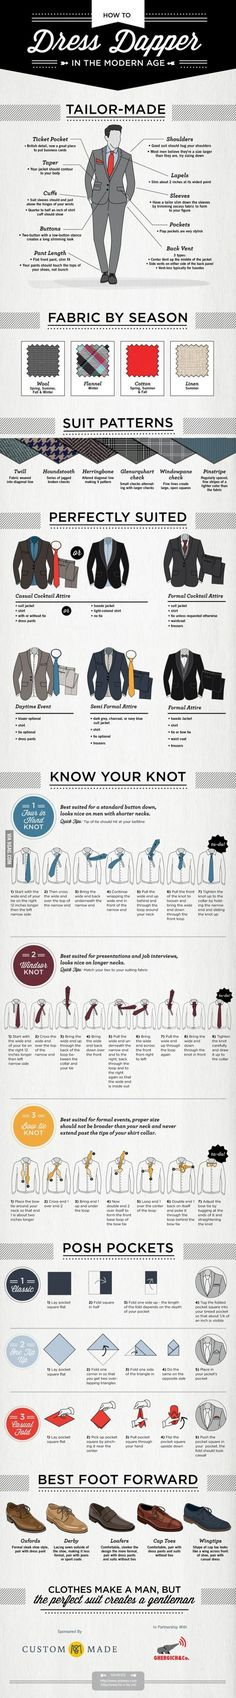 The Ultimate Suit Wearing Cheat Sheet Every Man Needs #manresume